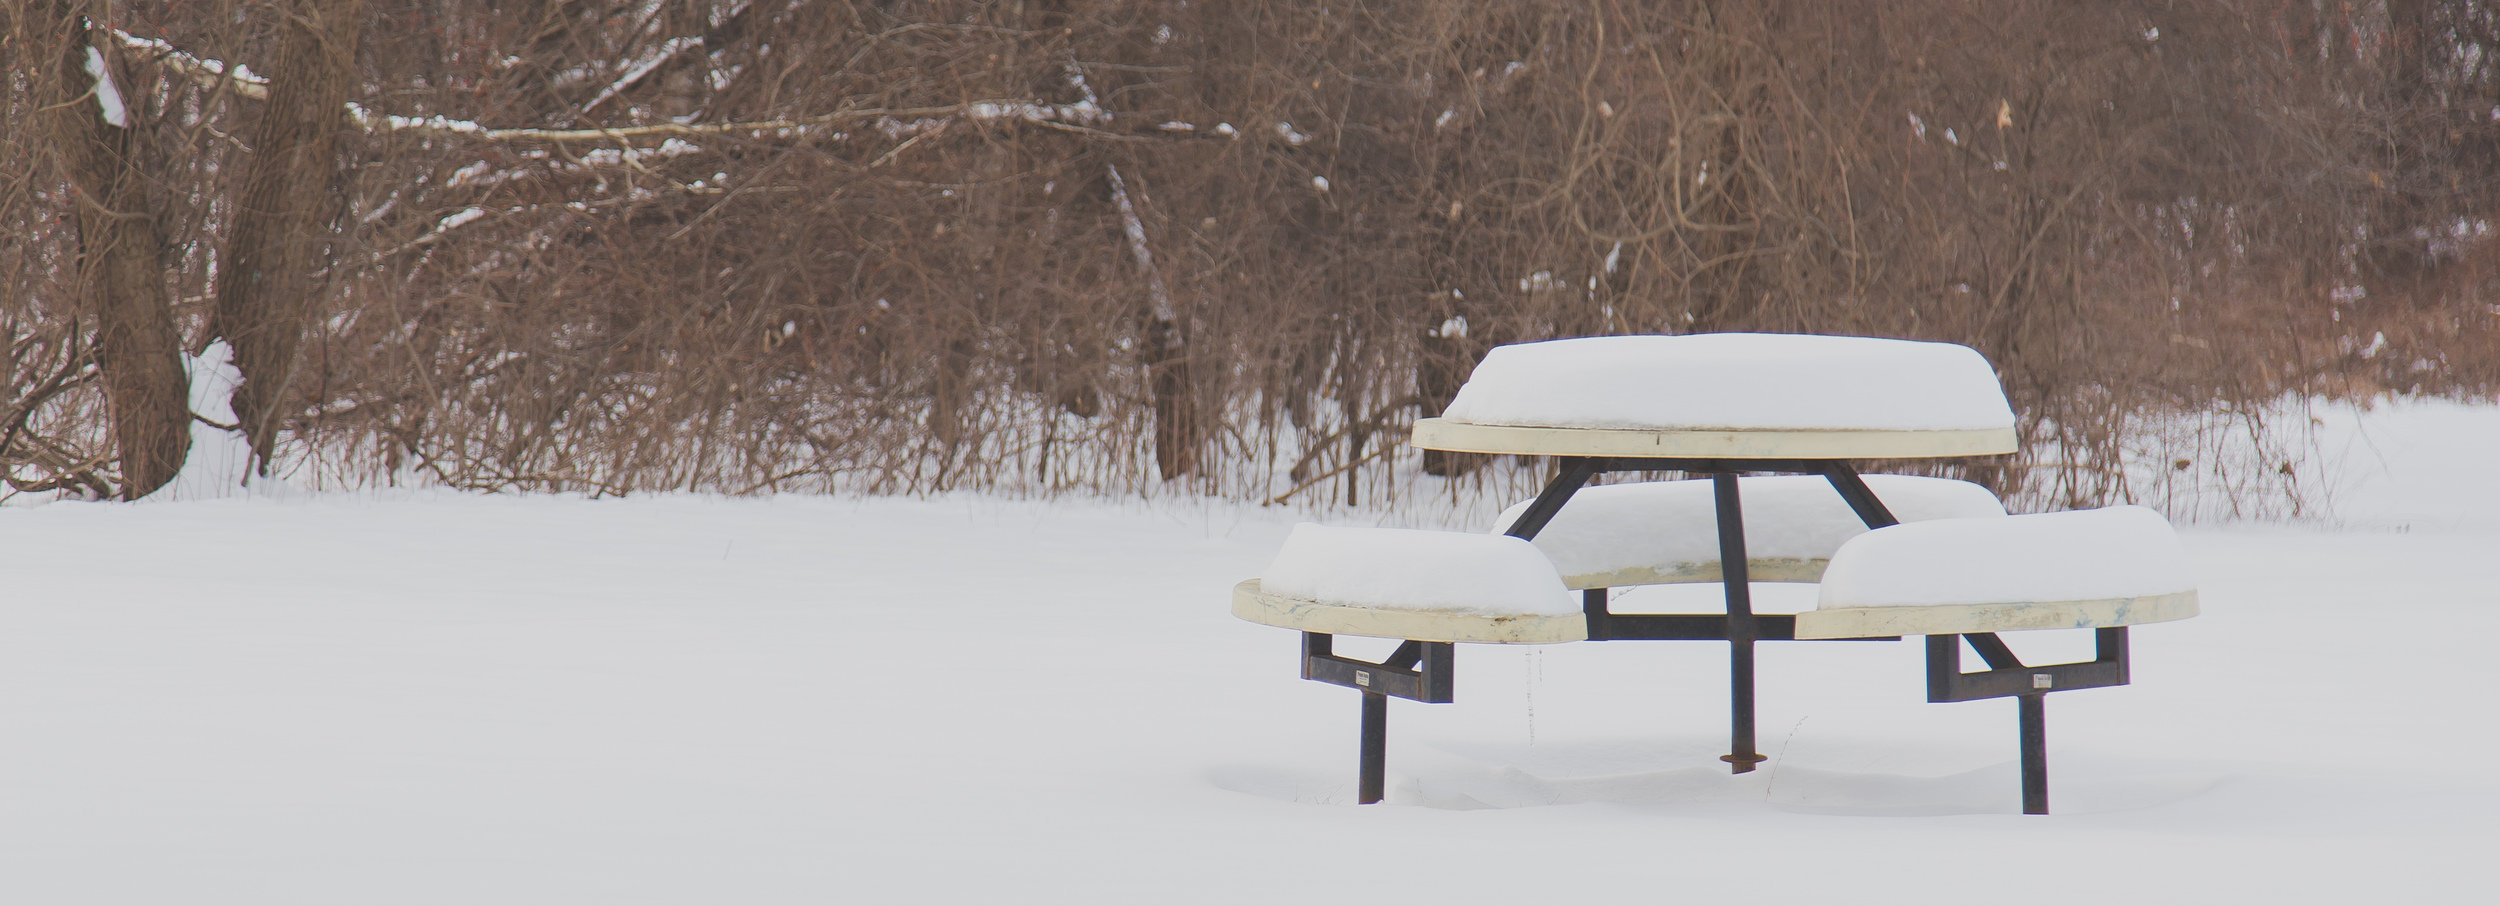 I dragged Erik out to take photos, and wanted to capture this little lonely picnic bench